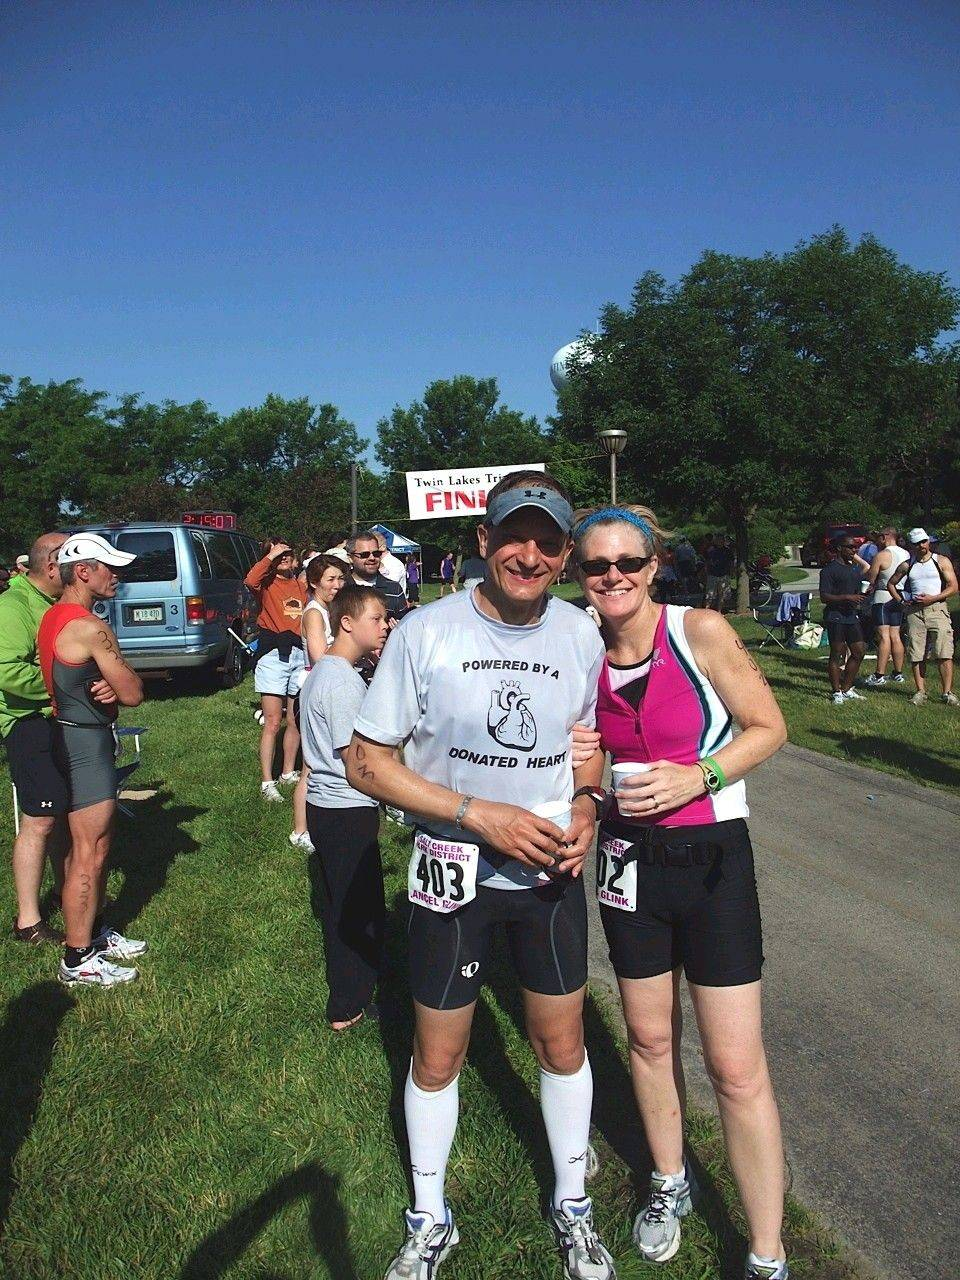 Kevin and Maureen Lue continue their active lifestyles, even after Kevin's heart transplant. Here they are the day of the Twin Lakes Triathalon in Palatine.